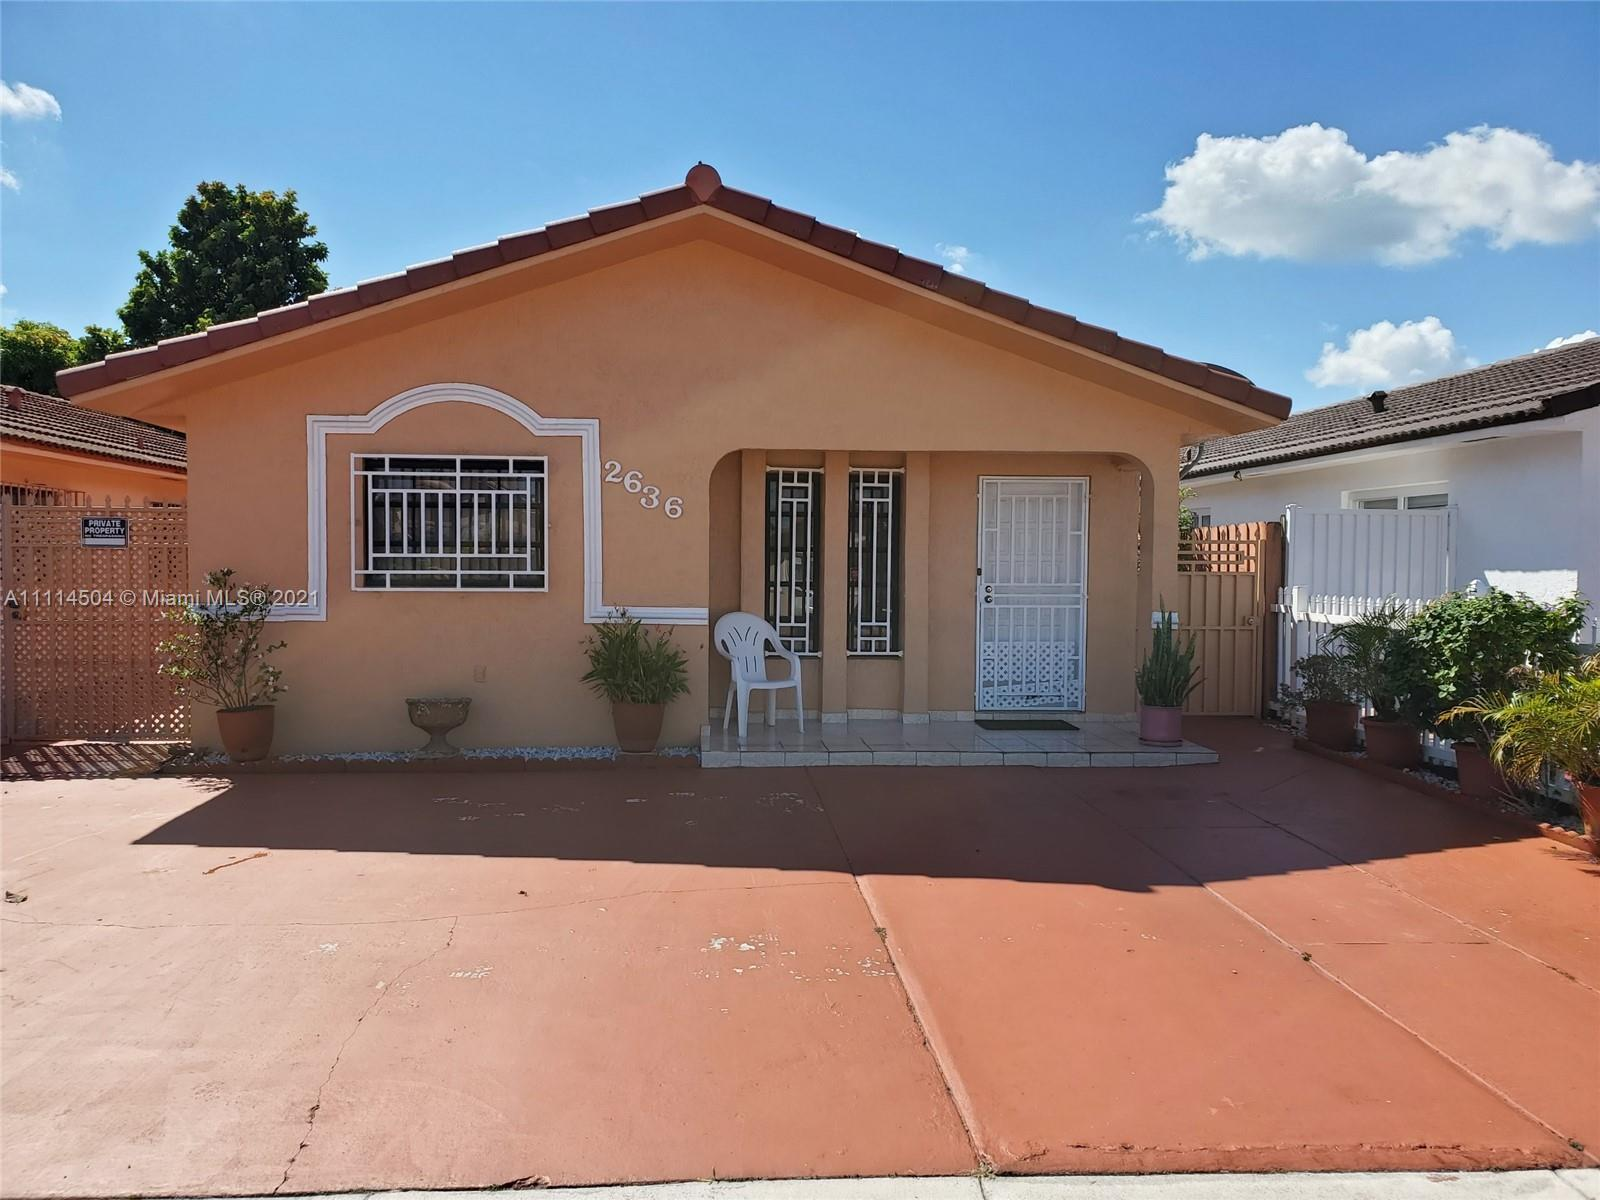 Single Family Home,For Sale,2636 W 72nd St, Hialeah, Florida 33016,Brickell,realty,broker,condos near me